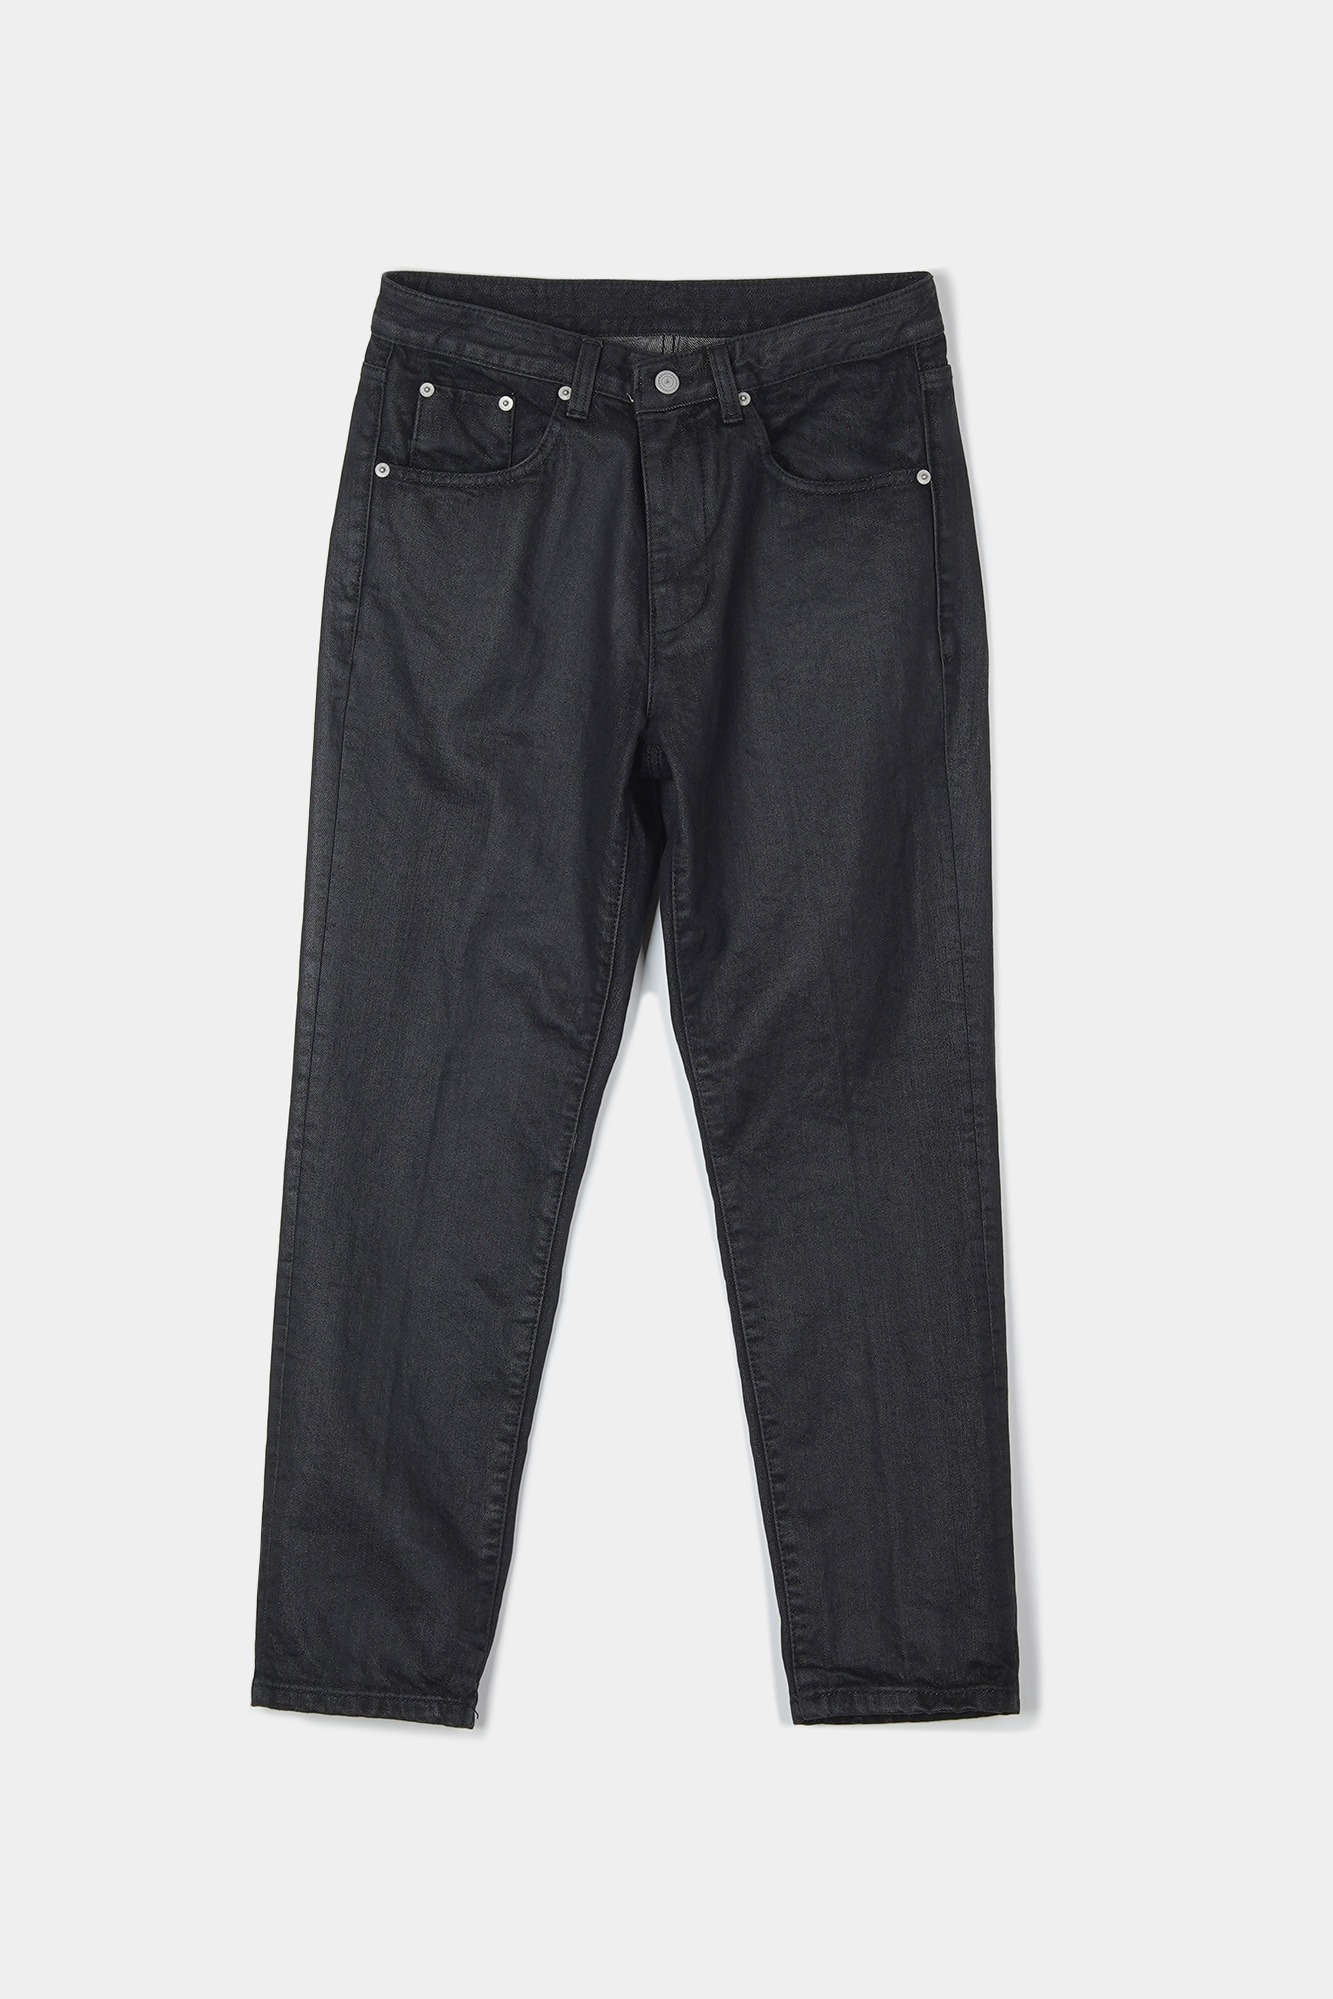 "BIRTHDAYSUIT Original Denim ""Black"""